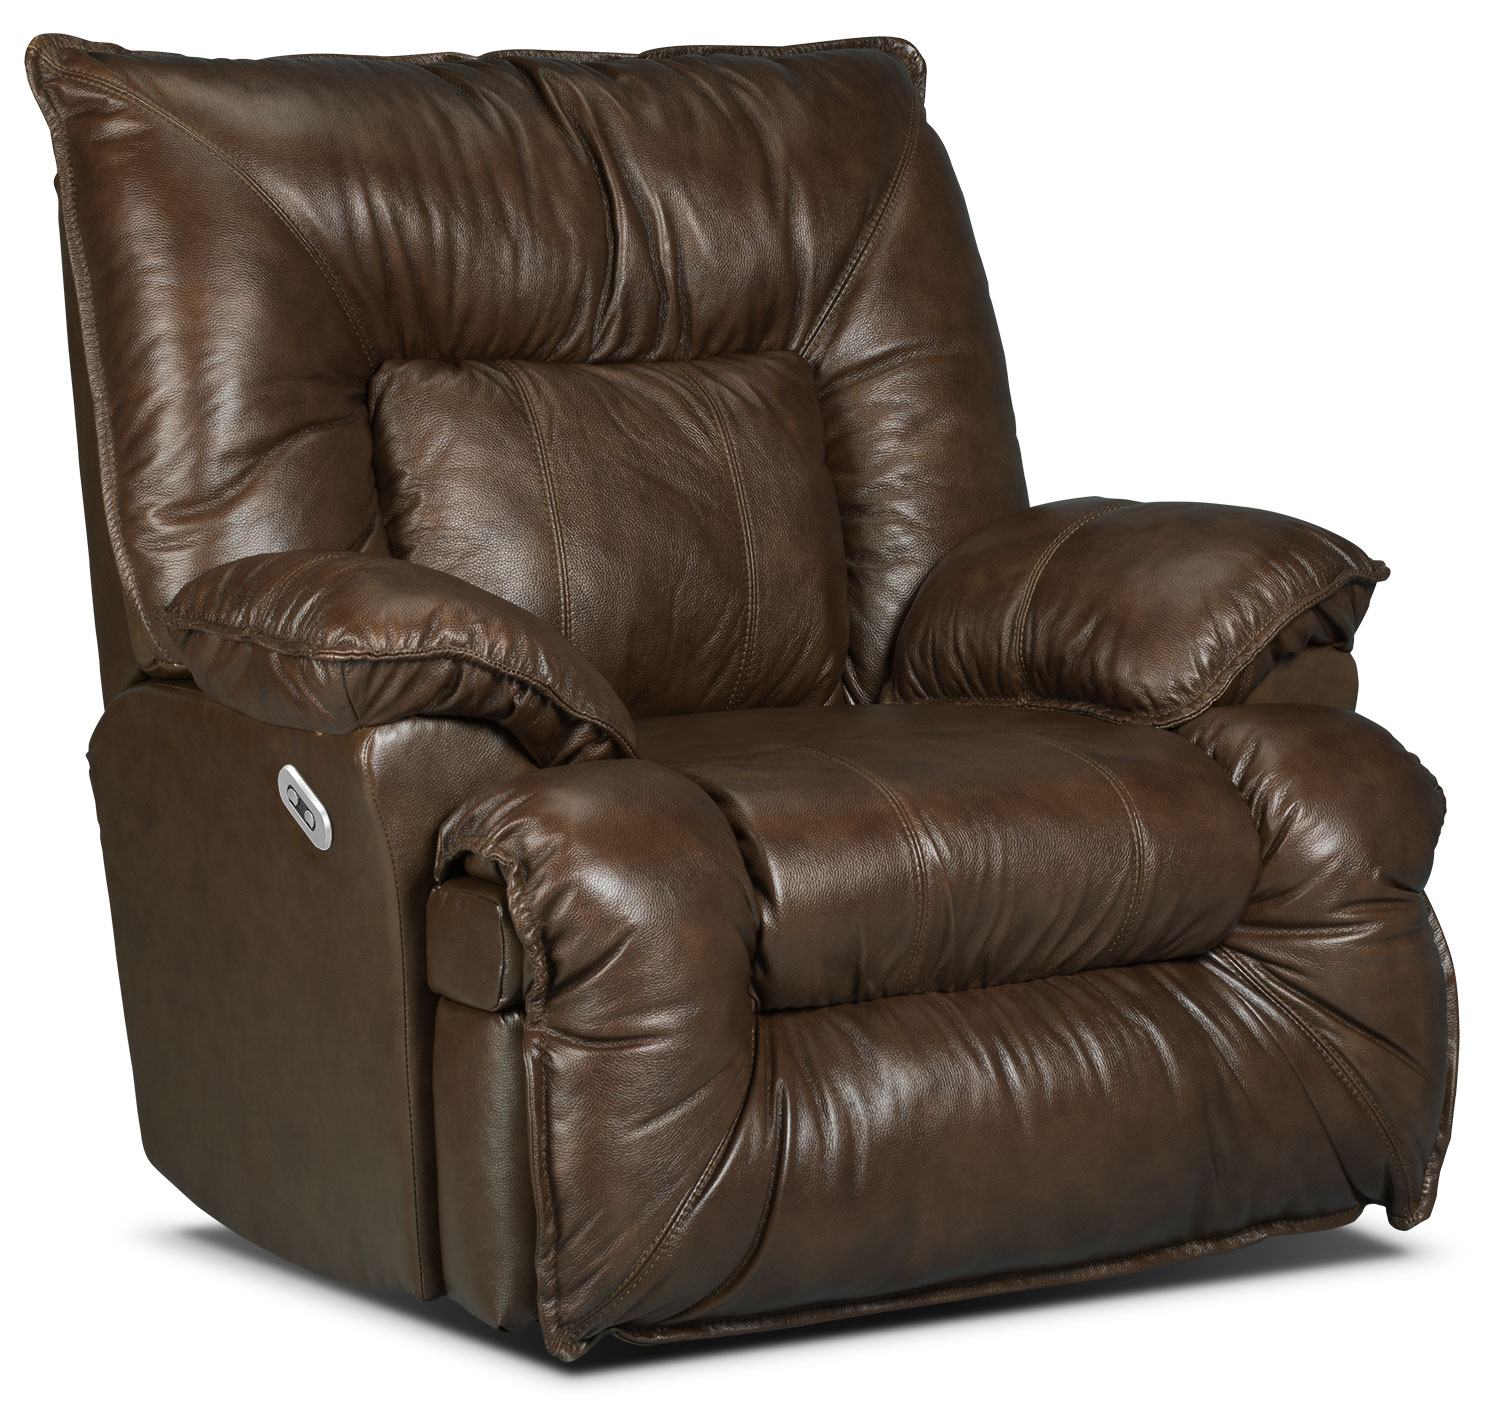 Designed2B Recliner 7726 Leather-Look Fabric Power Lay-Flat Recline Chair - Walnut